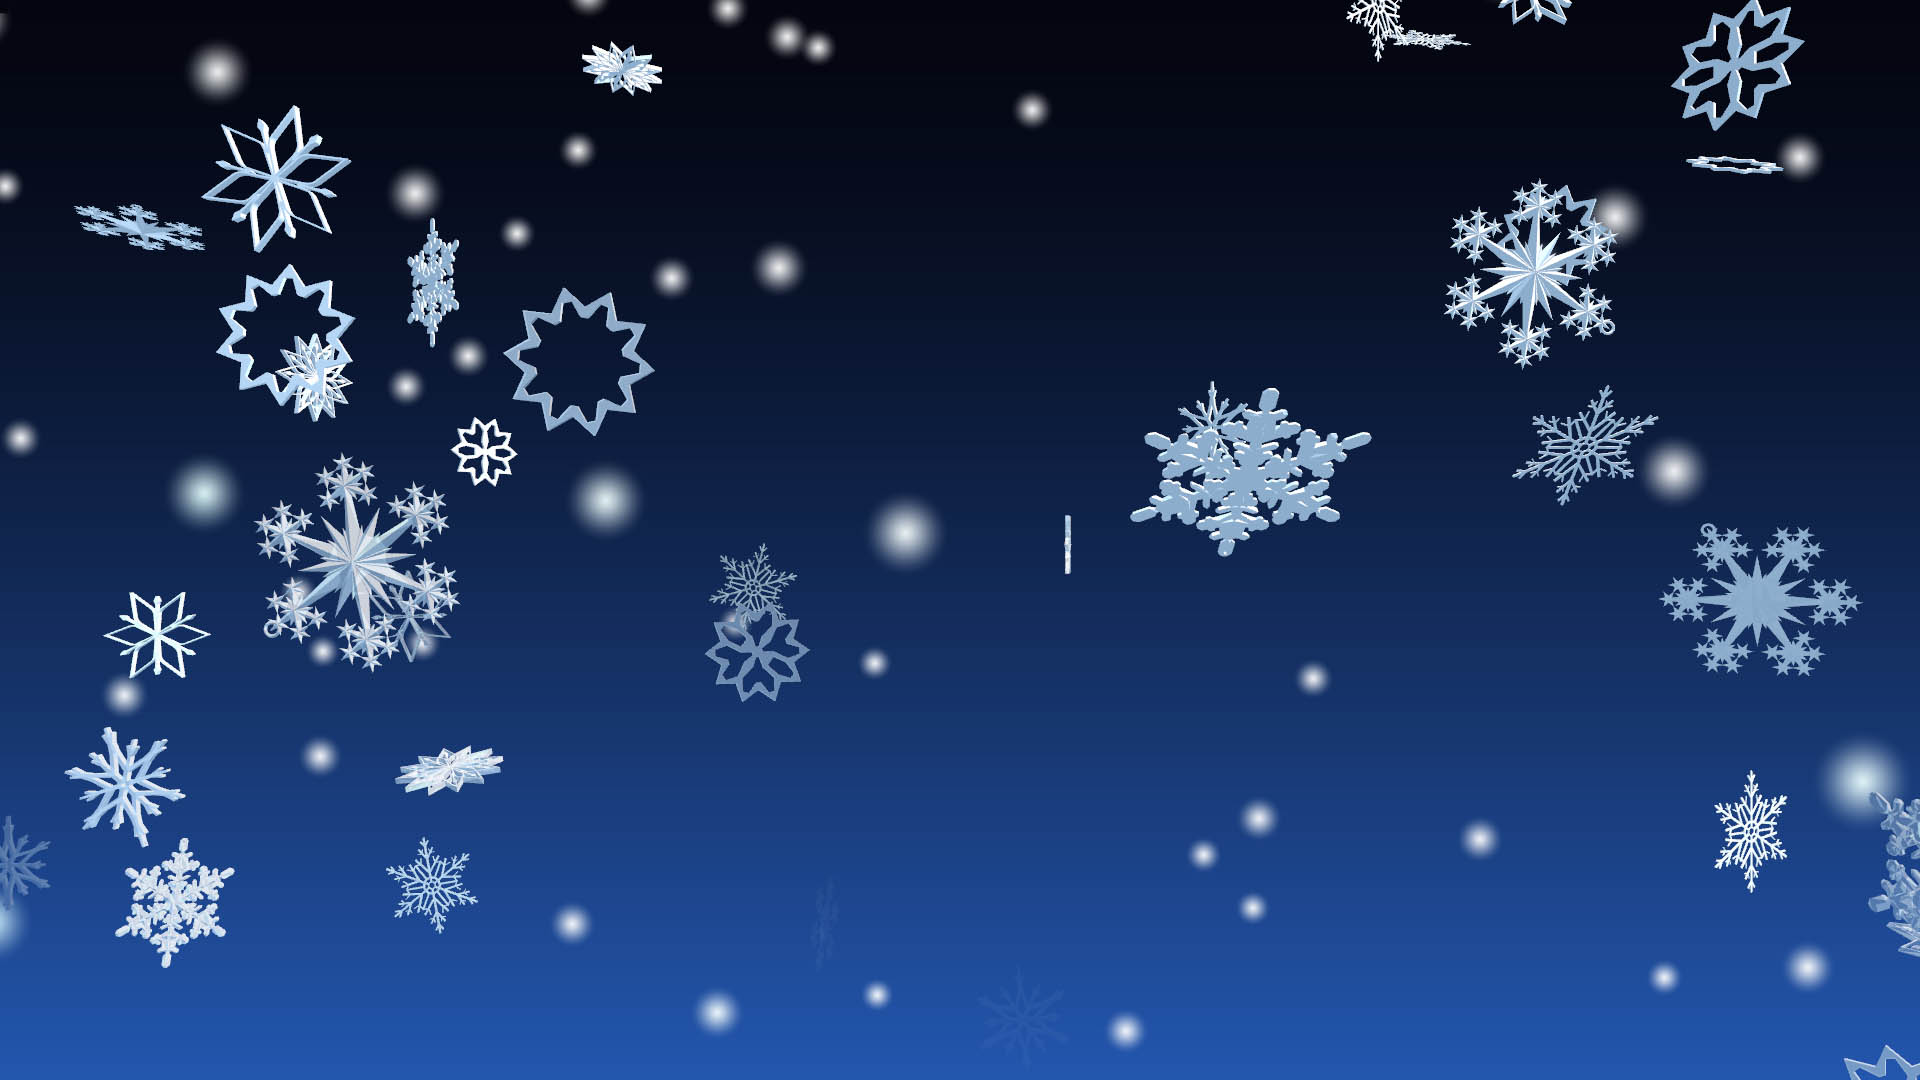 Windows 10 3d snowfall screensaver 3d winter snowflakes - Animated screensavers for windows 10 ...